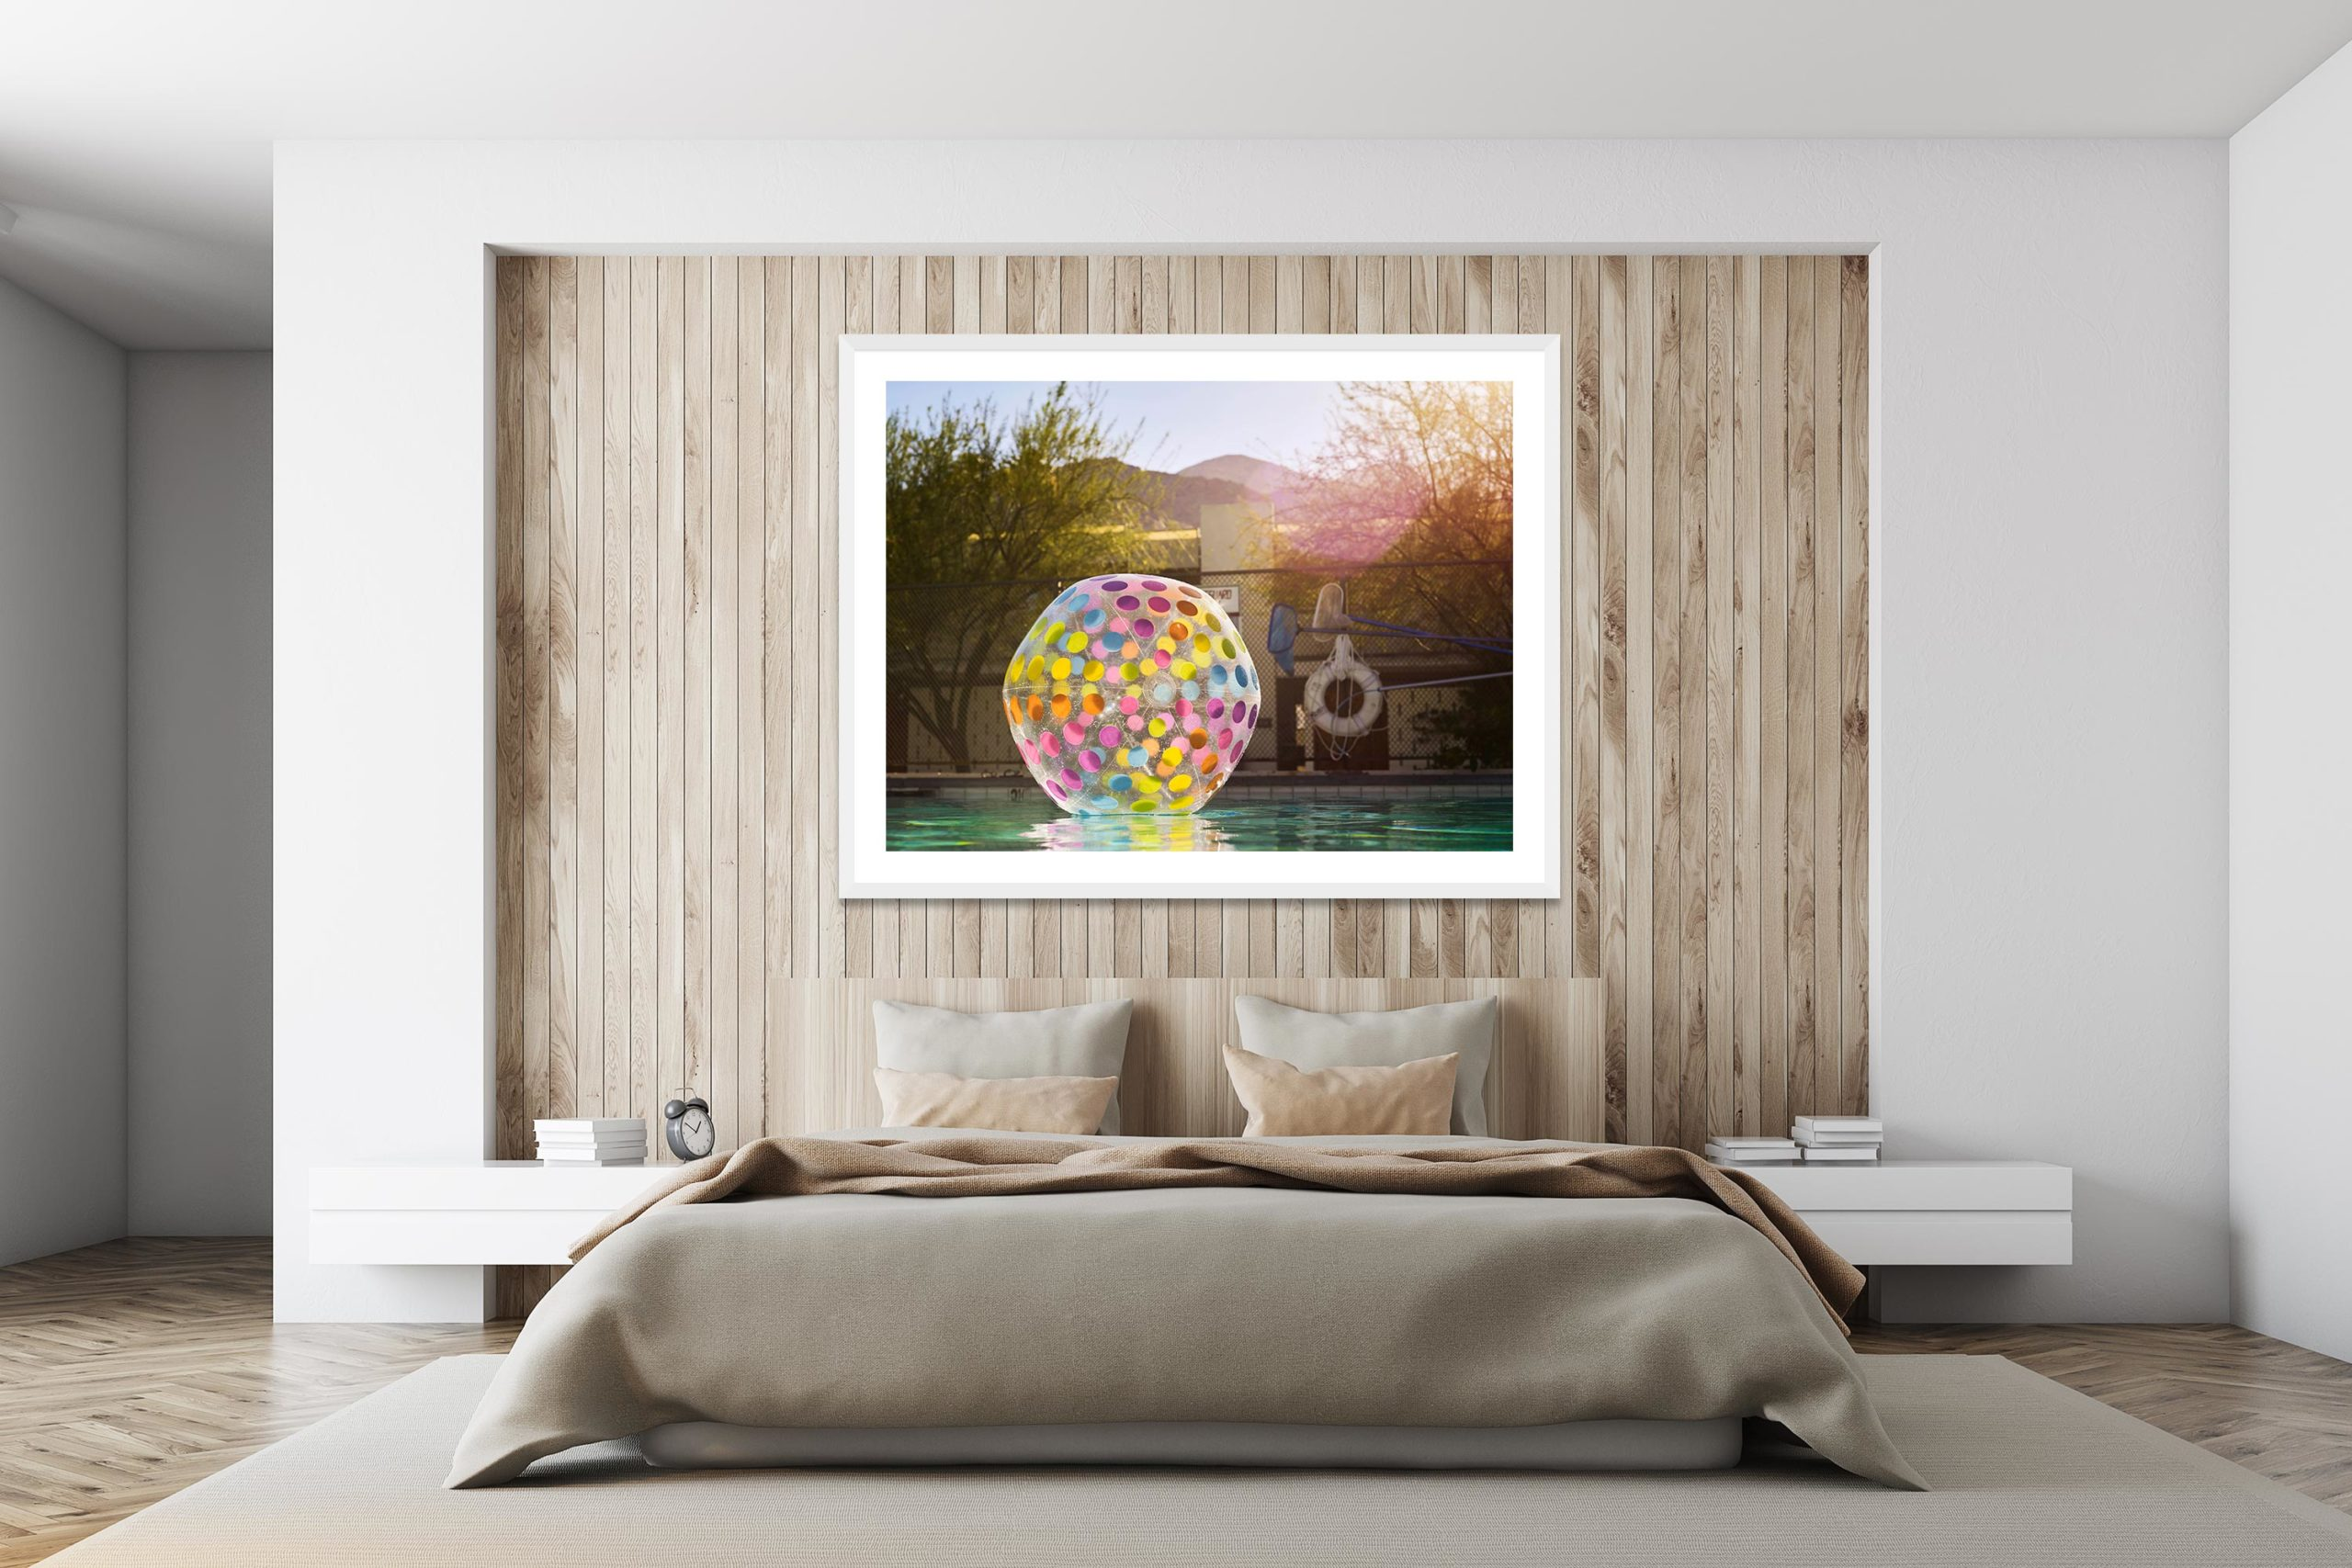 Apres Apres - White Frame - I Heart Palm Springs Collection - Fine Art Photography by Toby Dixon